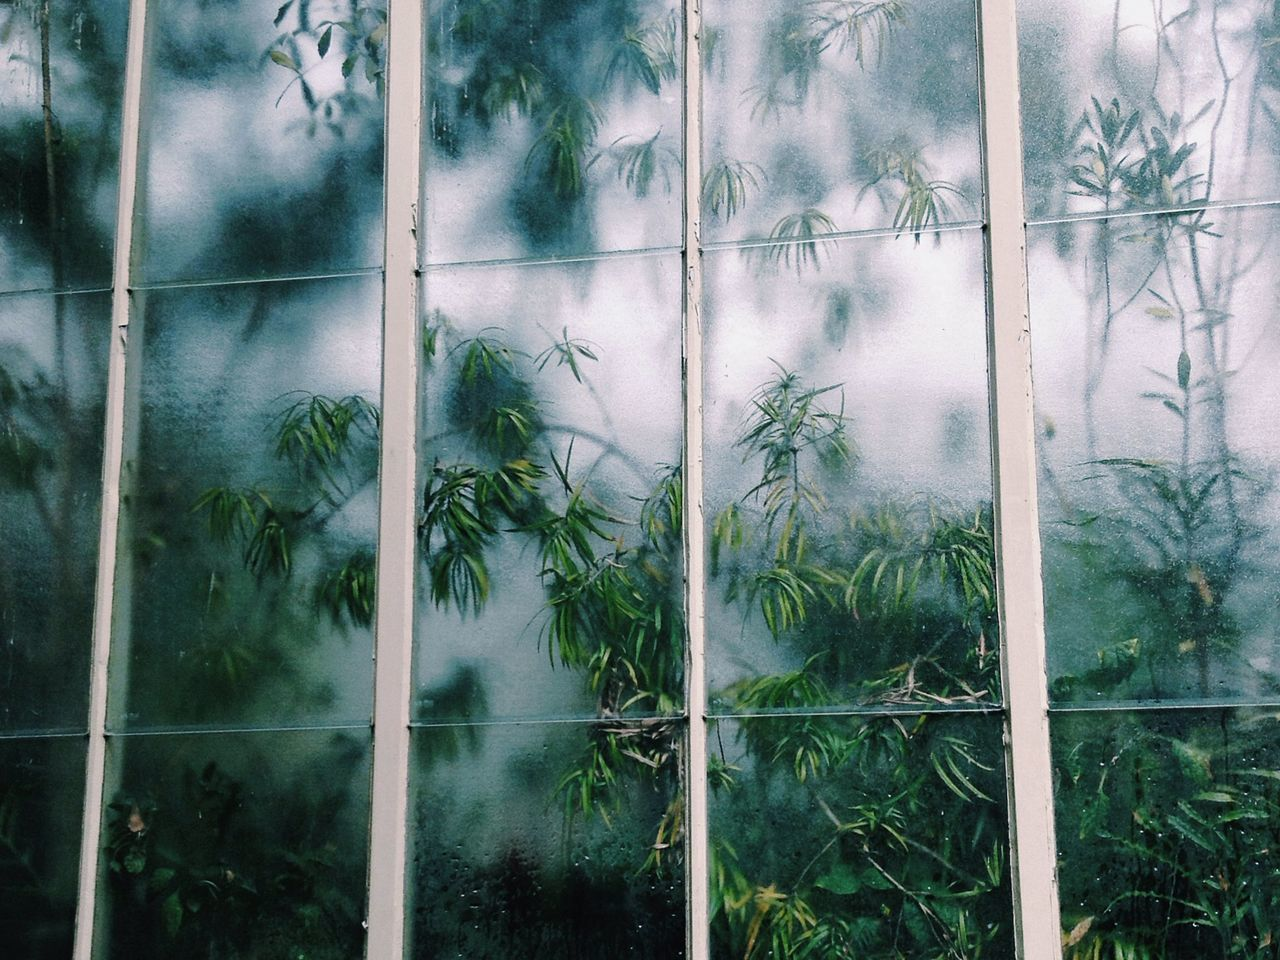 window, full frame, indoors, glass - material, transparent